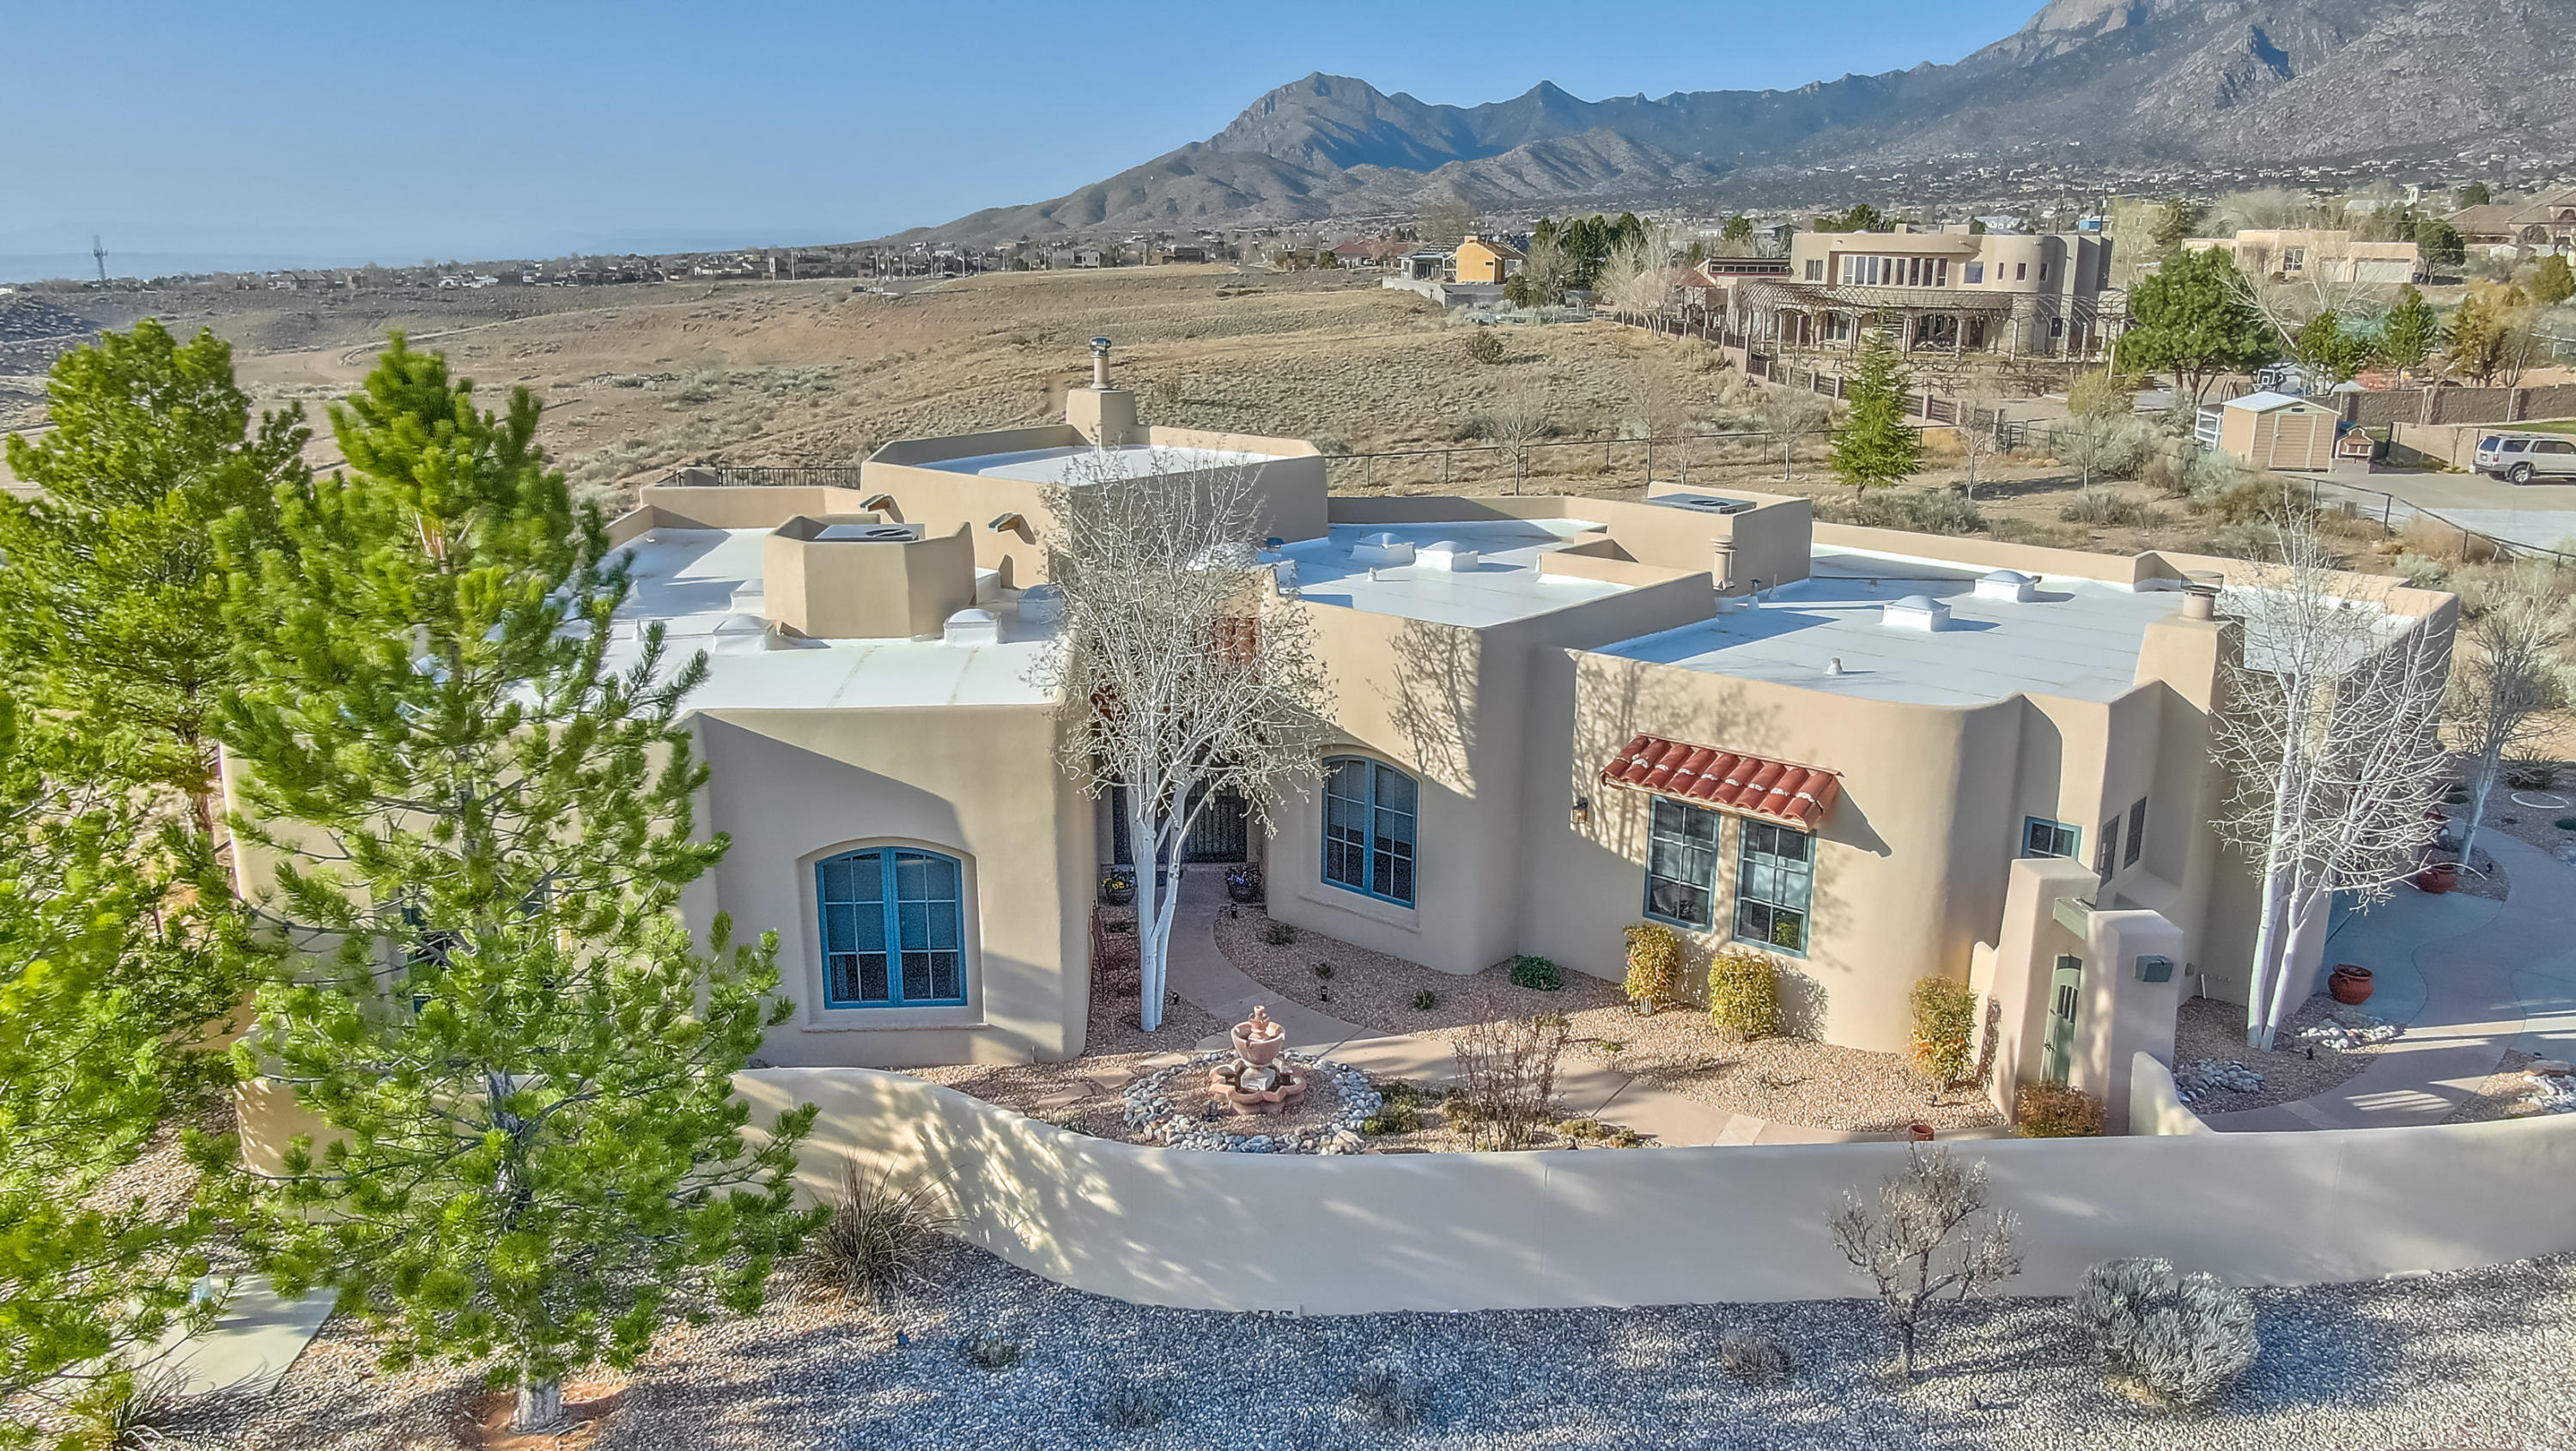 Exceptional View Lot, (City, Sandia Mountains, 3 other Mountains), Backs up to Open Space, Park & Equestian Park.  Gorgeous 1 level Home w/Possible In-law Quarters w/Gas, Log FP.  Kitchen w/Granite Counter Tops, 5 Burner Cooktop, Custom Cabinets w/Upper & Lower Lighting, Walk -in Pantry, Breakfast Area, plus  Formal Dining Room, Large Master BR & Spacious Master Bathroom w/Jacuzzi Tub, Separate Shower & Generous Master Closet, Great Room has Kiva Style GasLog FP, Built-in Book Shelves, Beautiful Wood Beam Ceiling Extensive Open & Covered Patios w/Gas Light FP, Spiral Staircase to Deck w/City & Mountain Views. Home has 11 Skylights & 8 Ceiling Fans, Beautifully Landscaped (Full Drip System), Hot Tub, Curtains in DR & 2nd, 3rd BR, Garage Refrigerator does not convey!!!